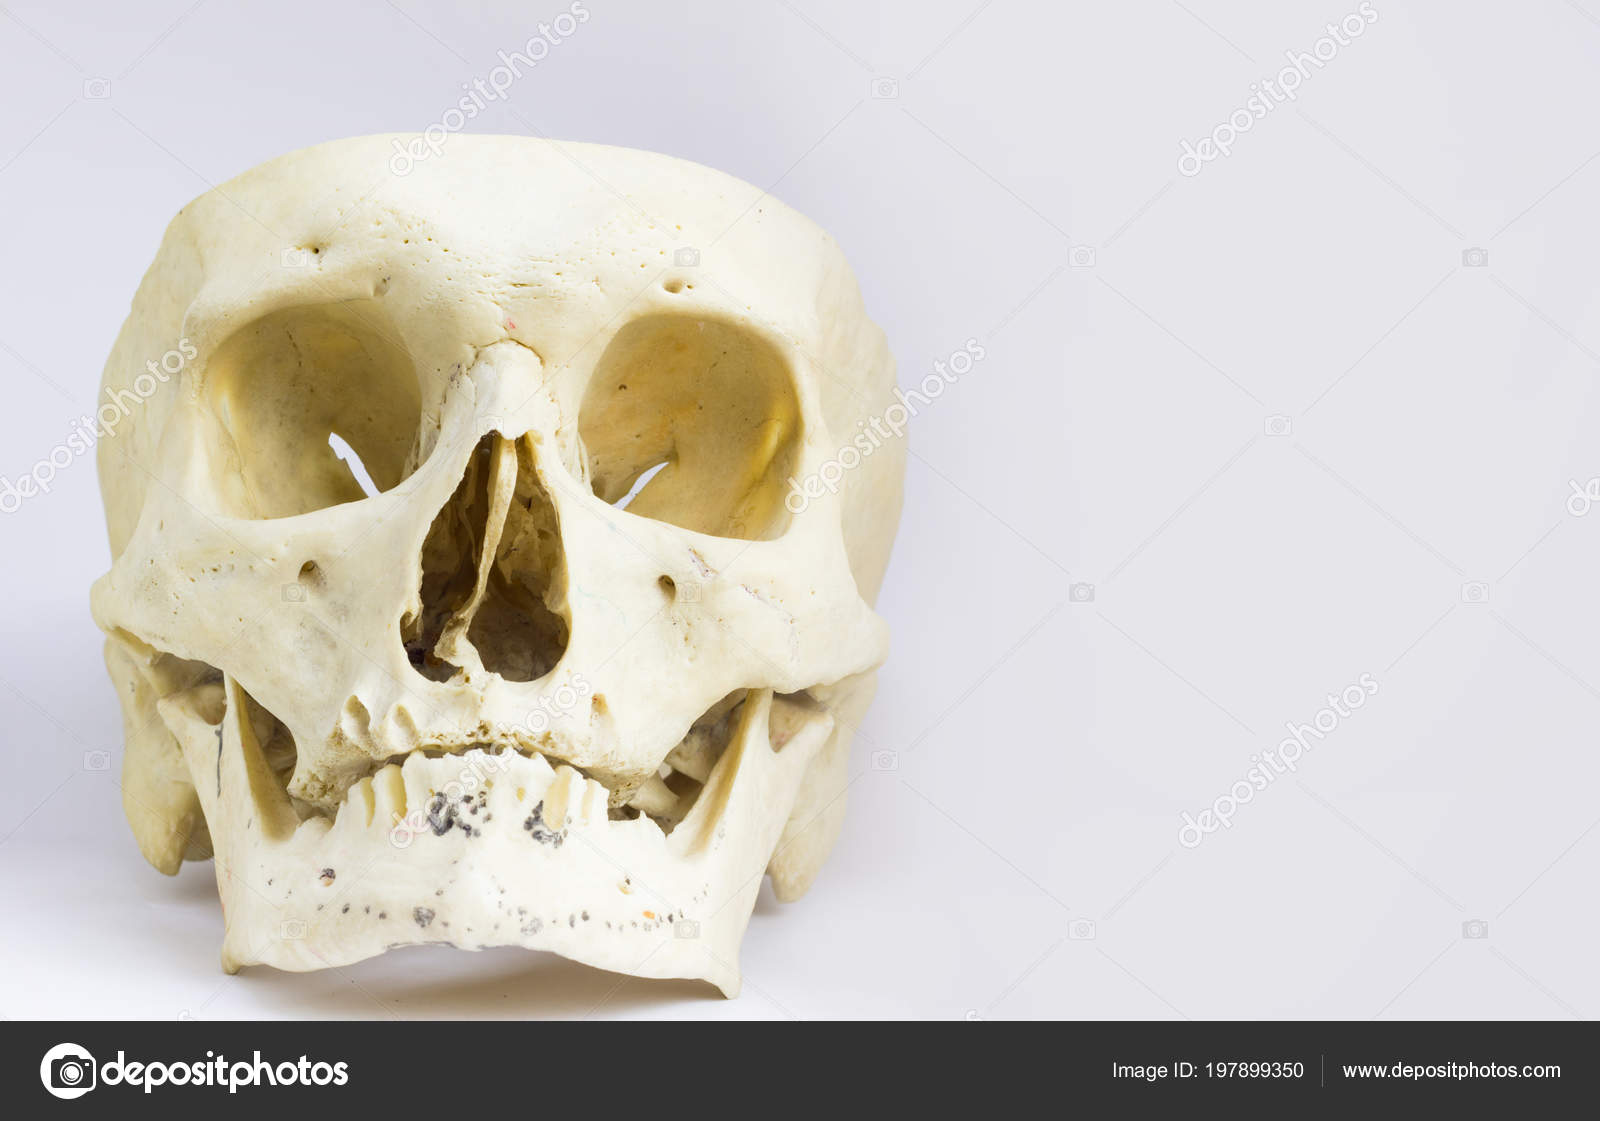 Front Anatomical View Human Skull Bone Mandible Vault Skull Isolated